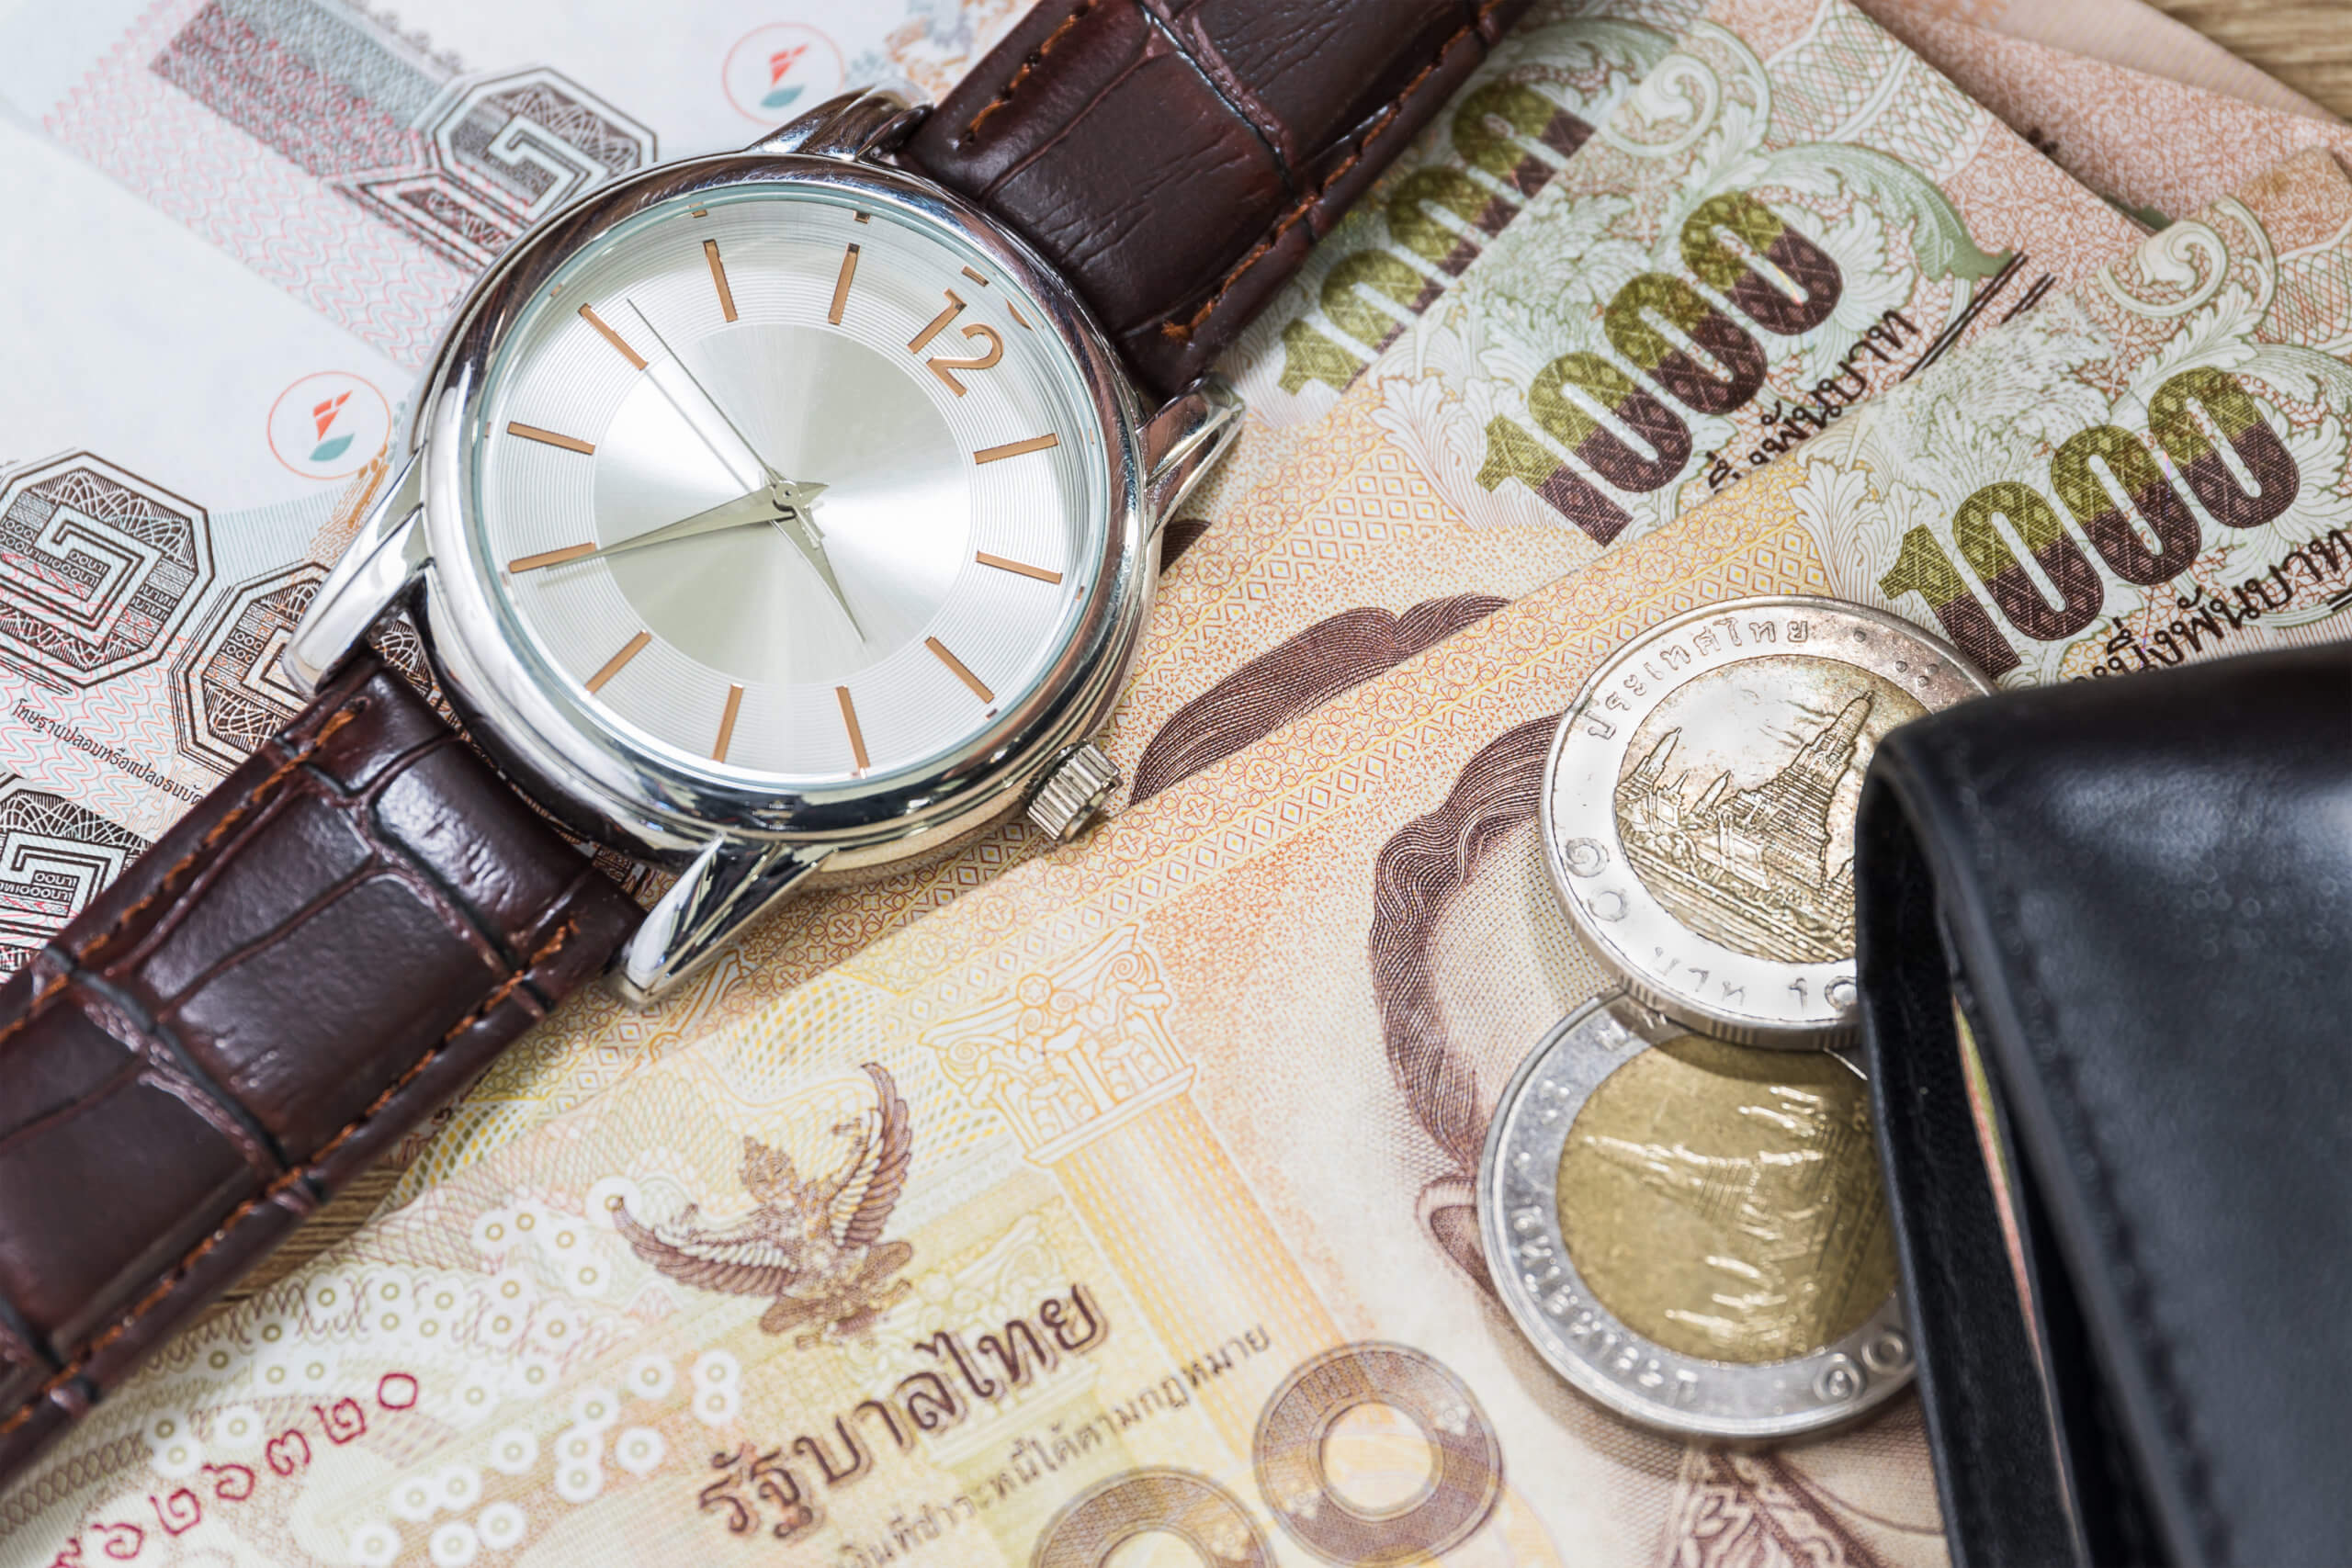 Watch and wallet on banknote